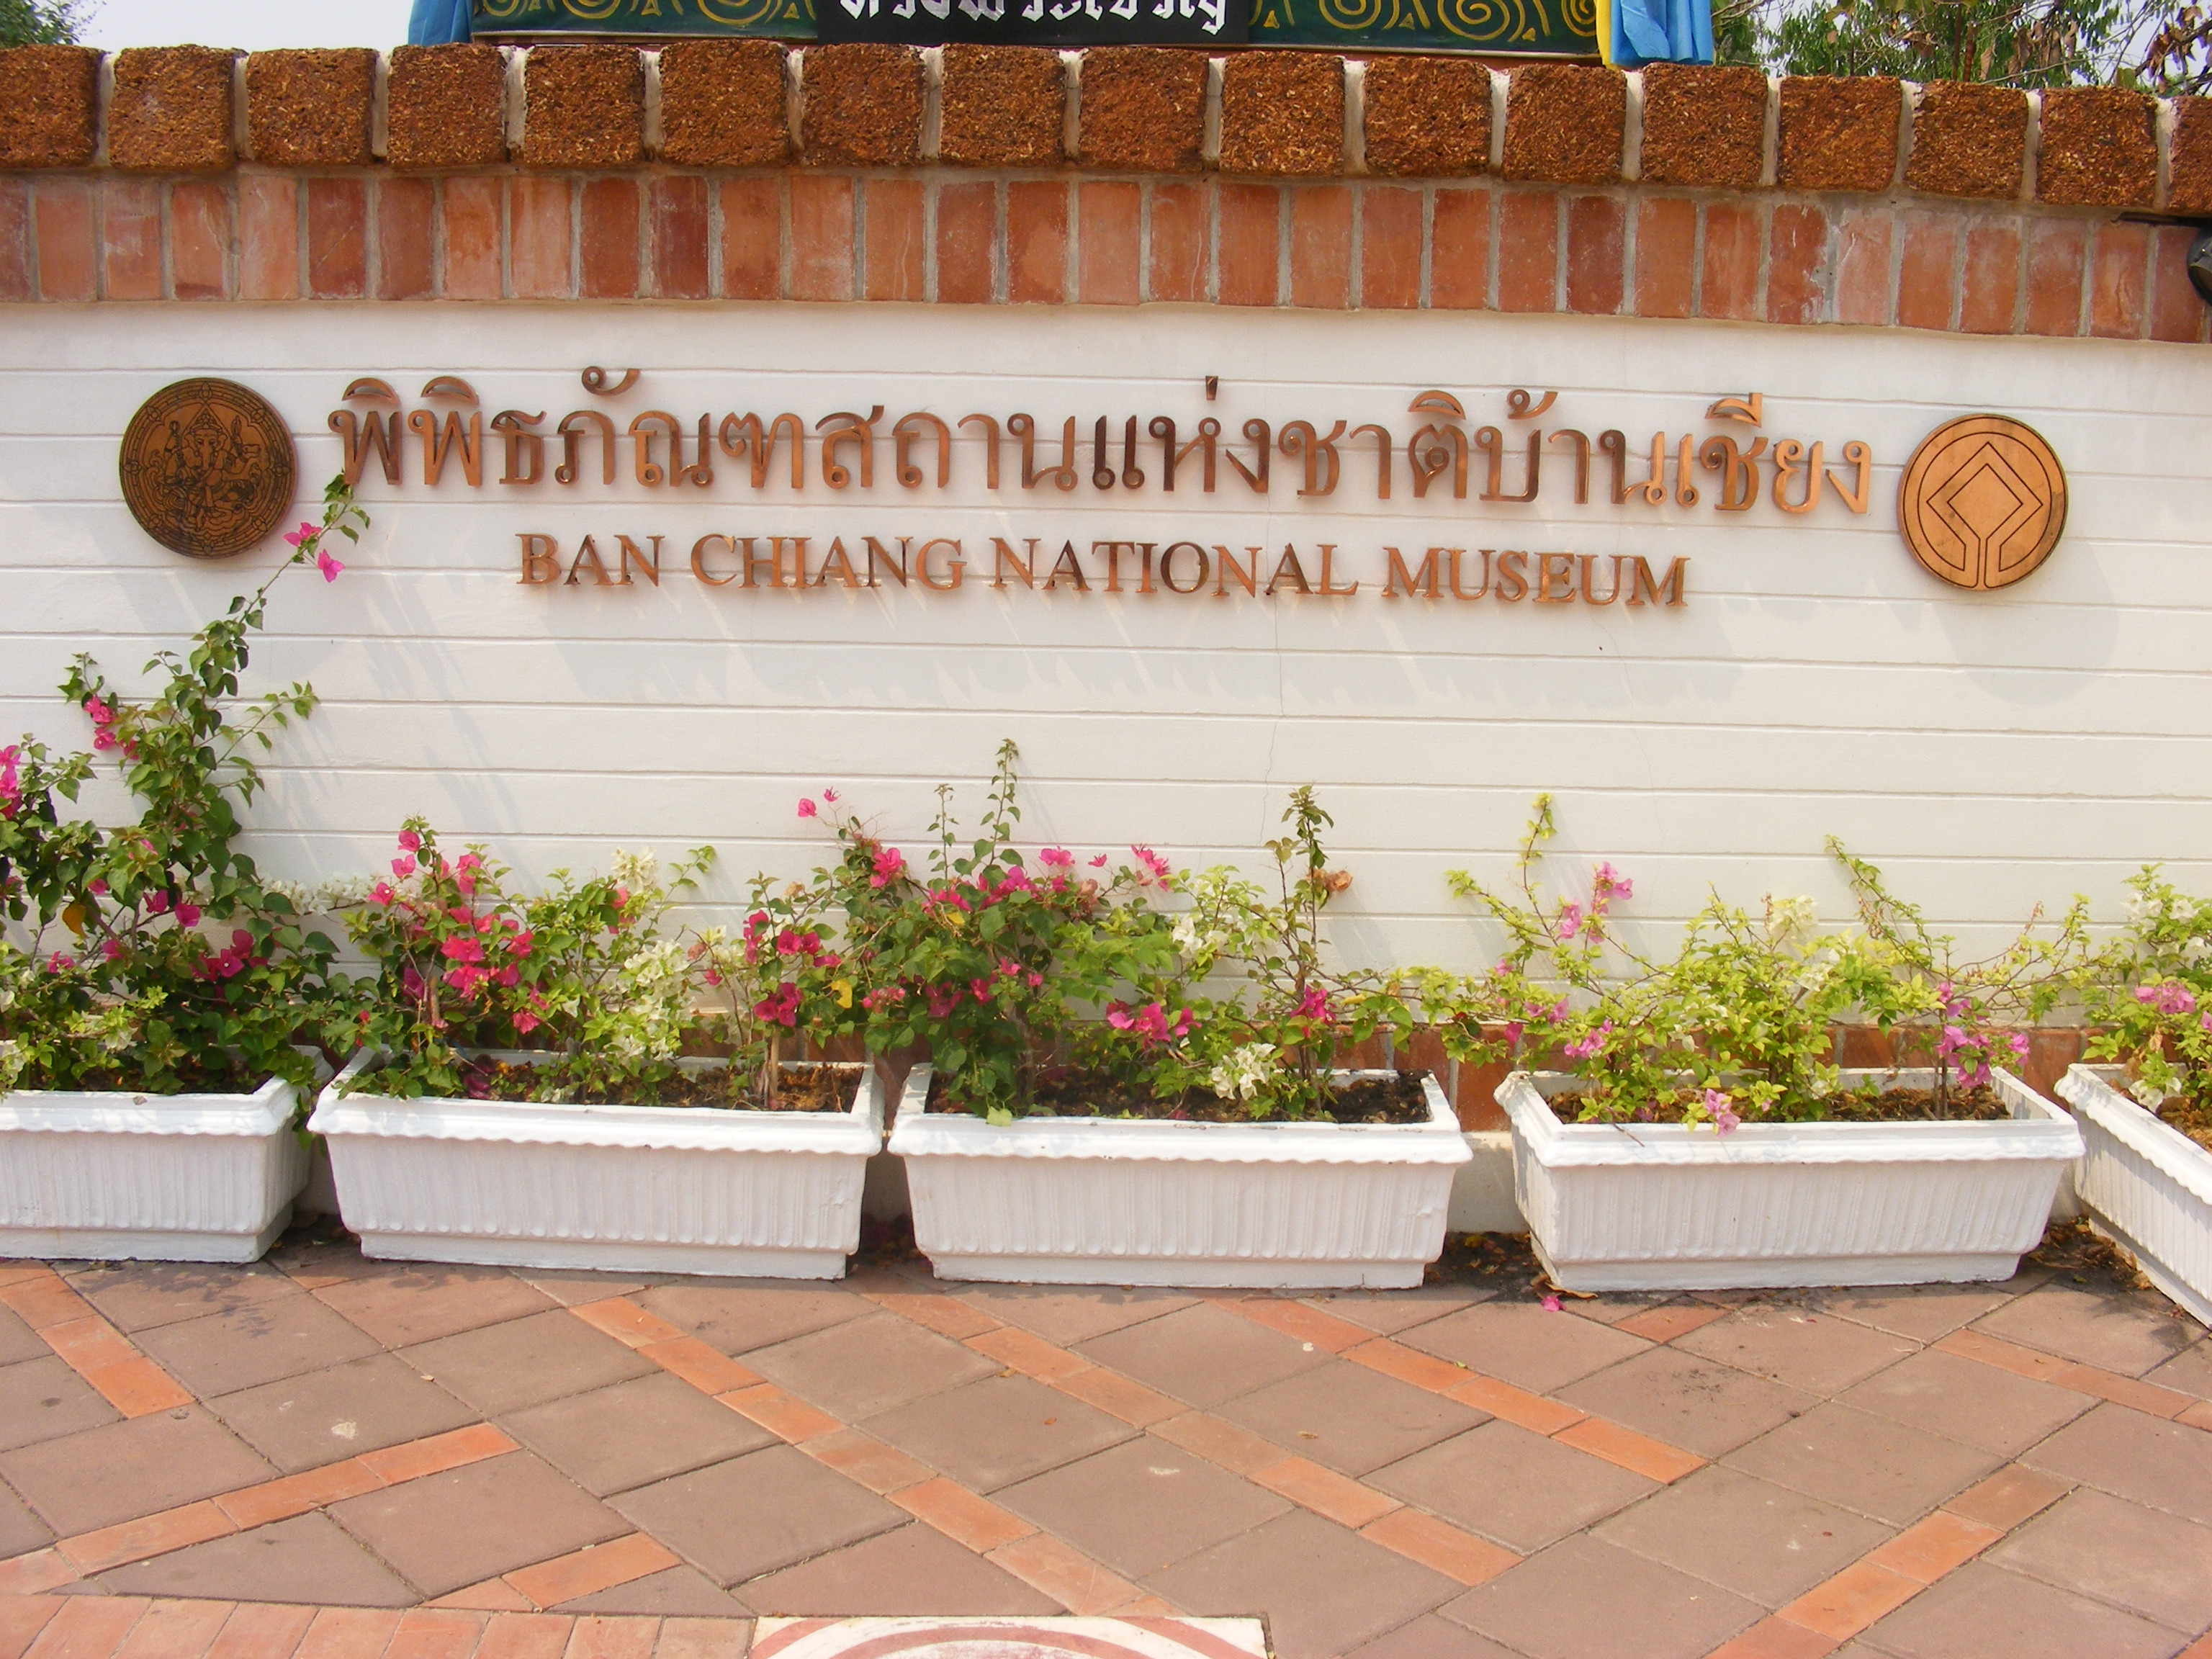 File:Sign Ban Chiang National Museum - Thailand.JPG ...